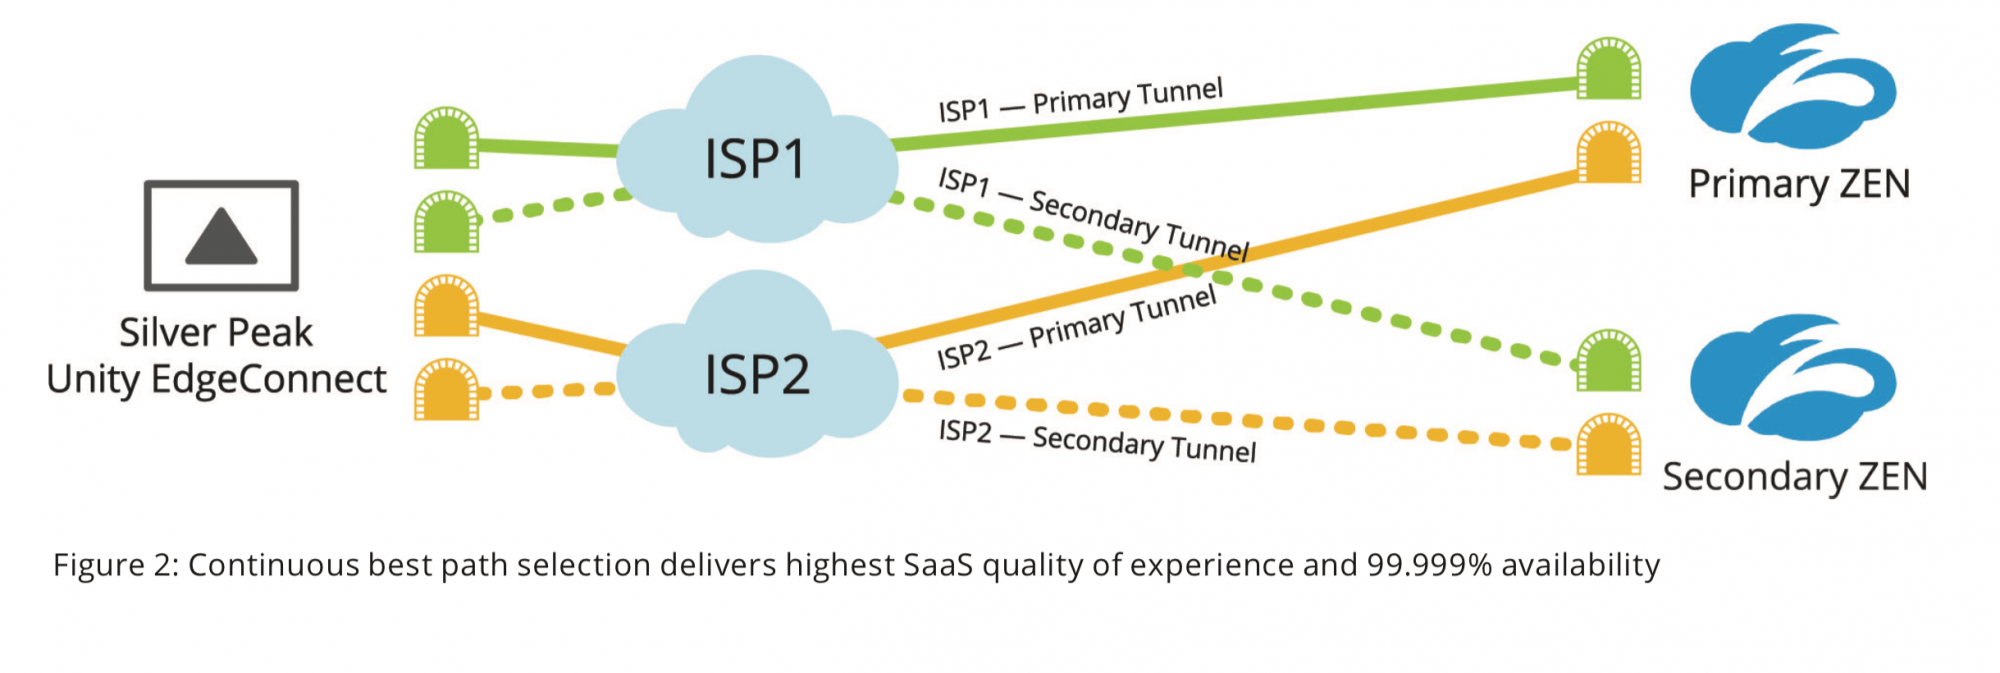 Figure 2: Continuous best path selection delivers highest SaaS quality of experience and 99.999% availability